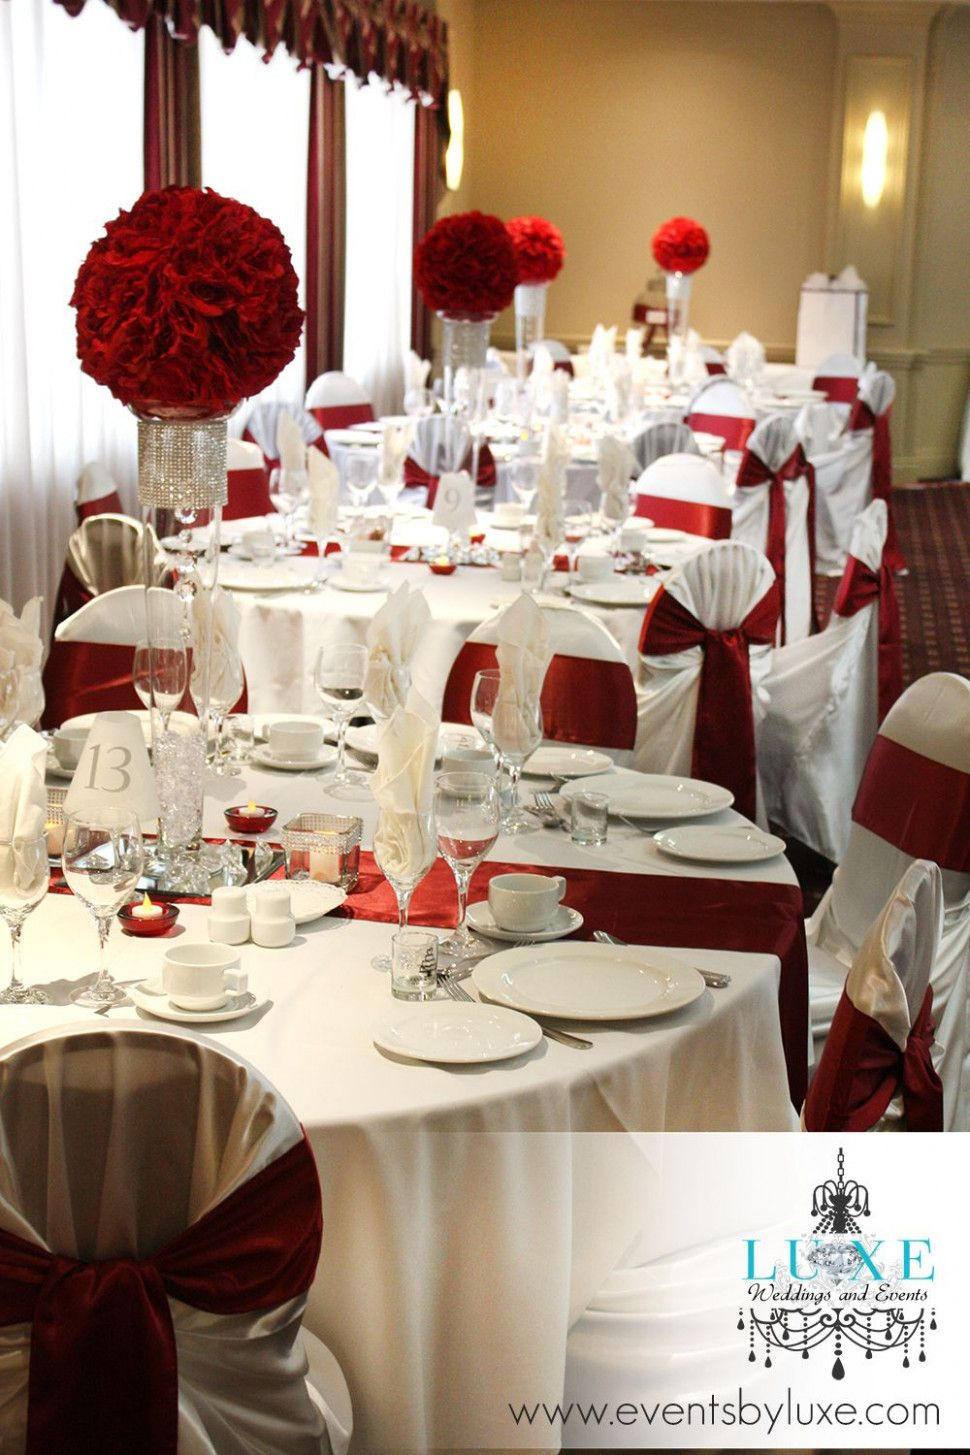 Burgundy Wedding Ceremony Table Settings (With images